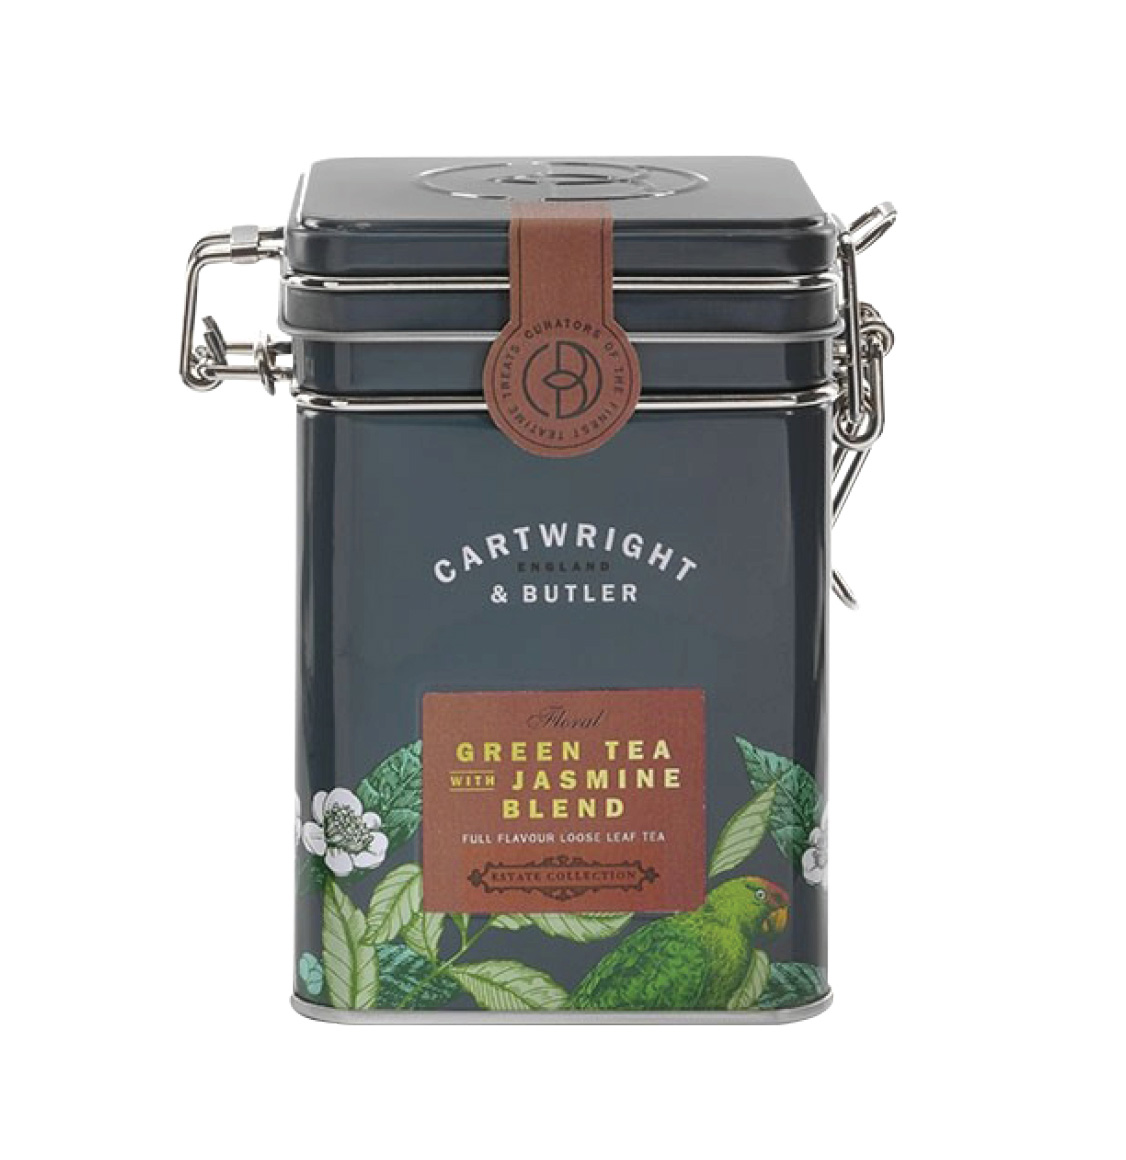 Cartwright and Butler Loose Green Tea and Jasmine in Caddy 70g